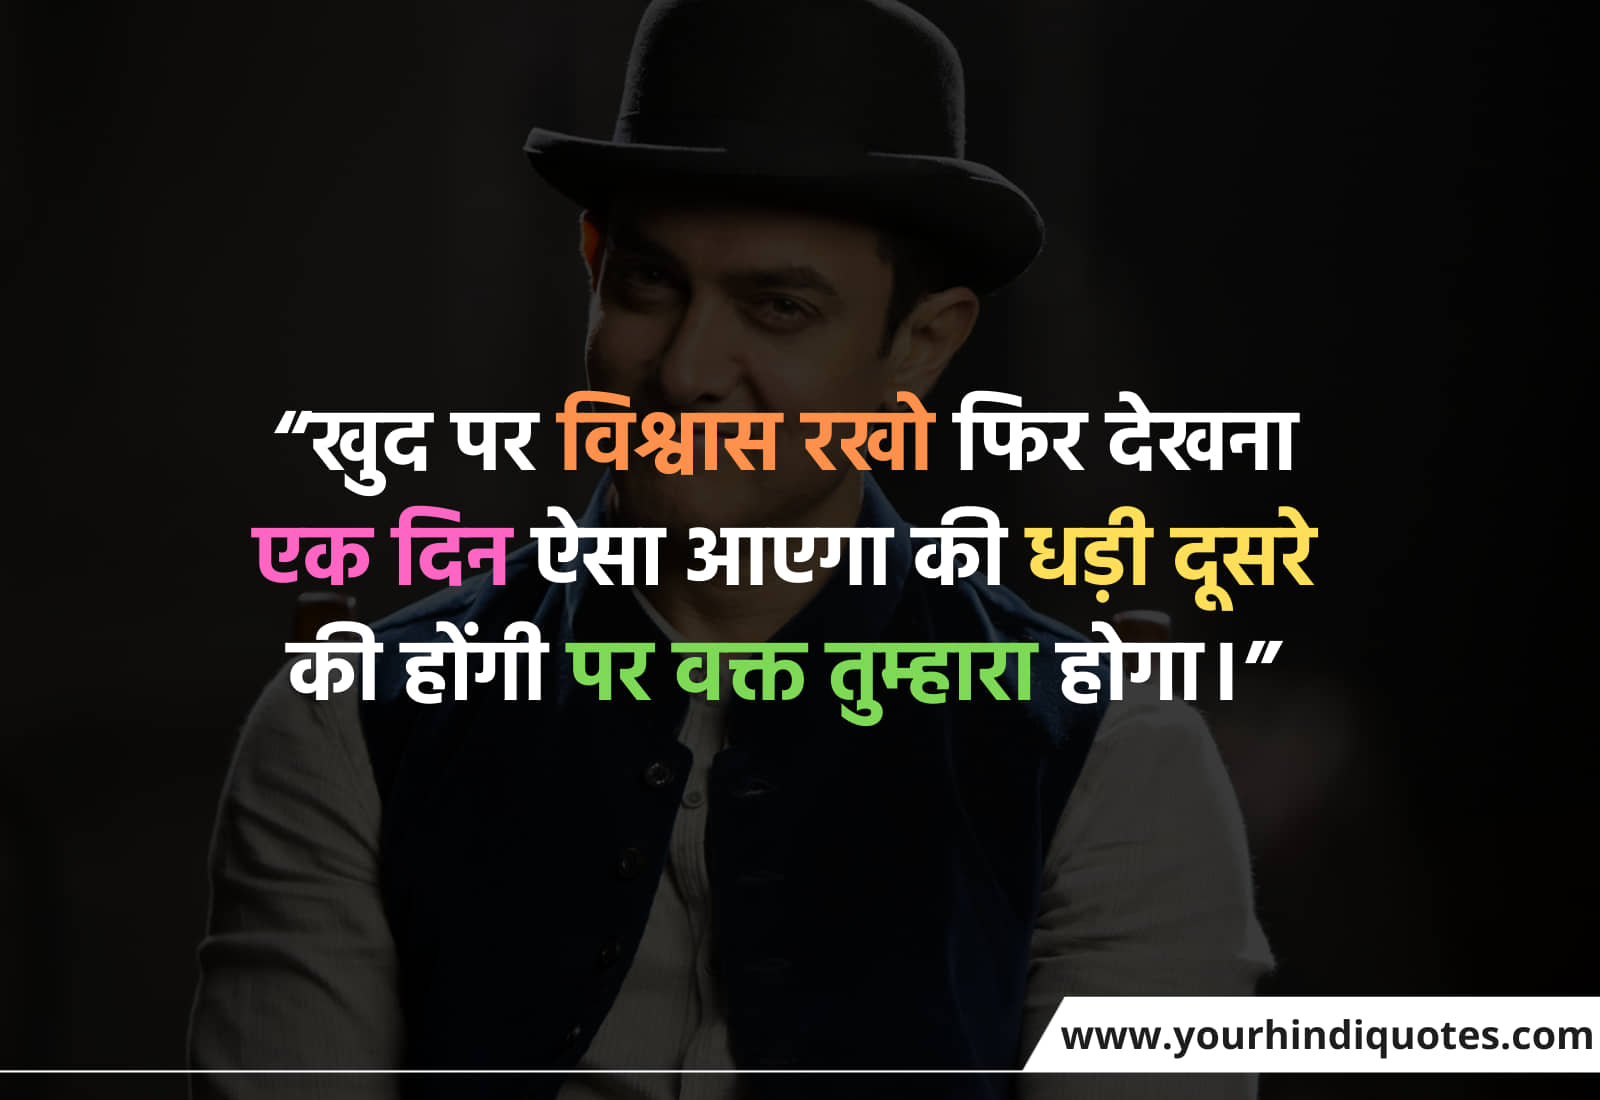 Best Thought Of The Day Suvichar